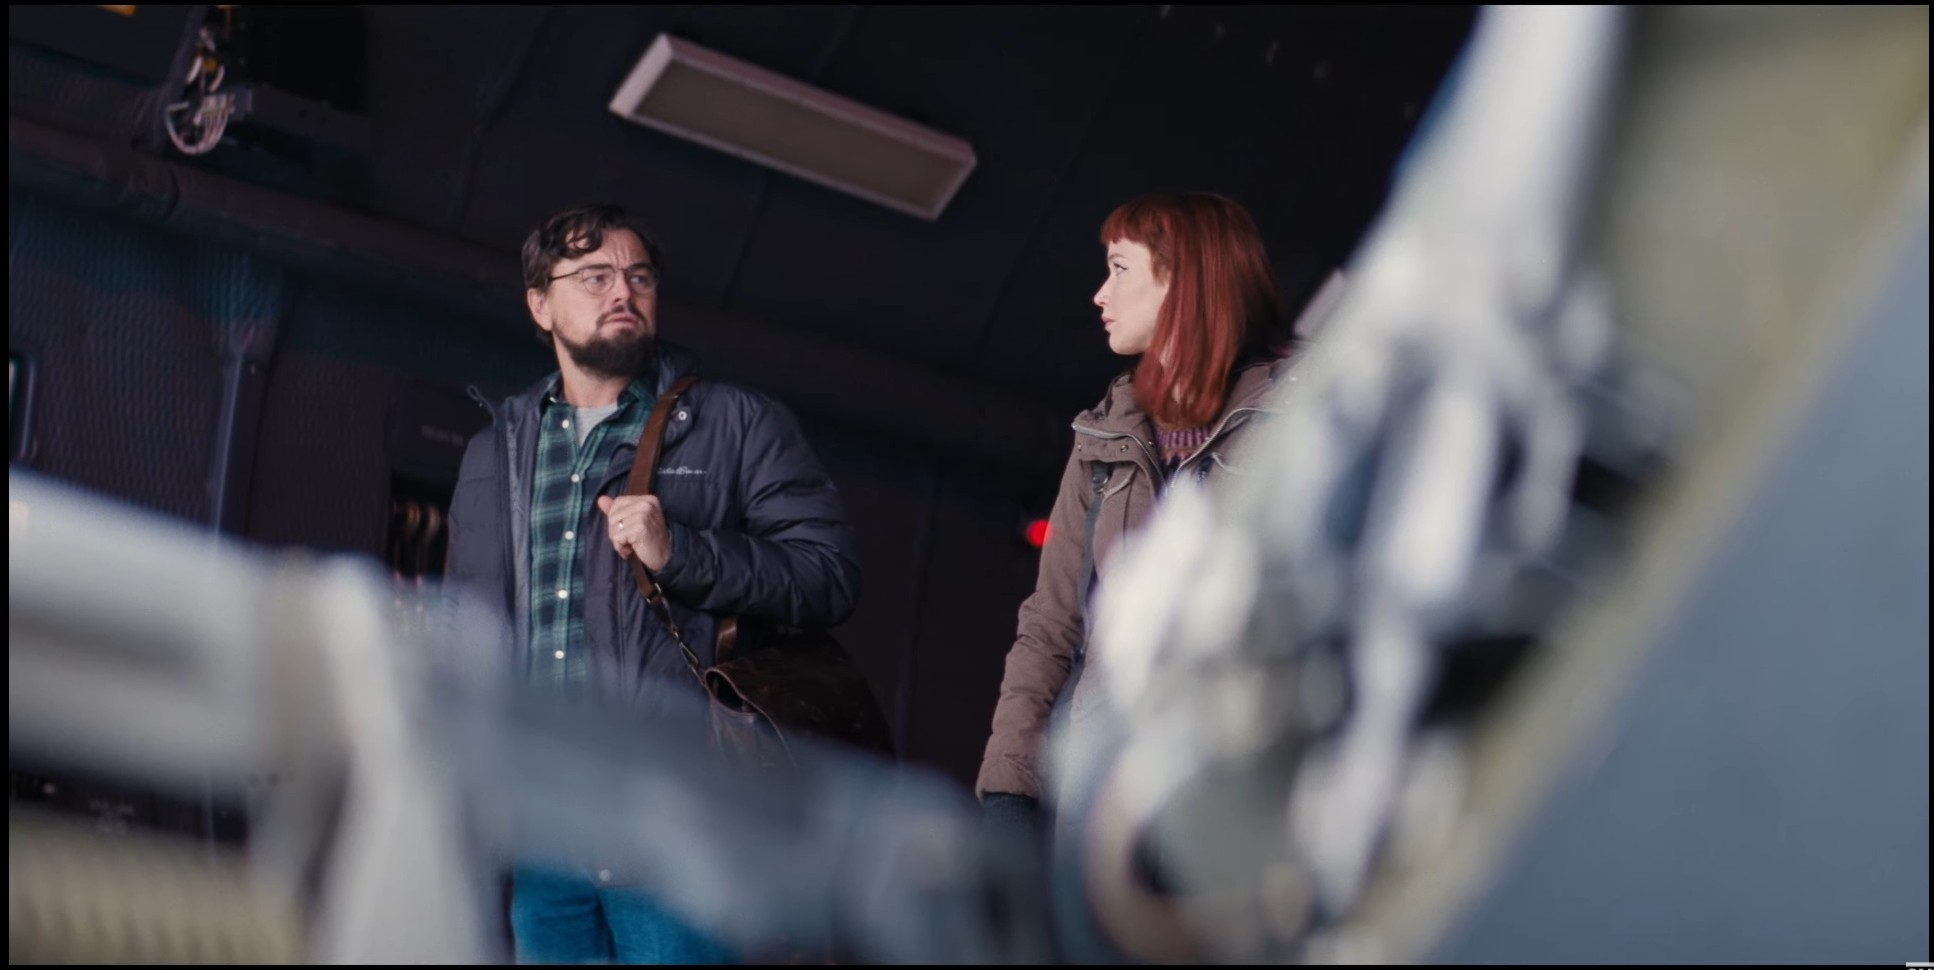 Leonardo DiCaprio and Jennifer Lawrence in Don't Look Up (2021)